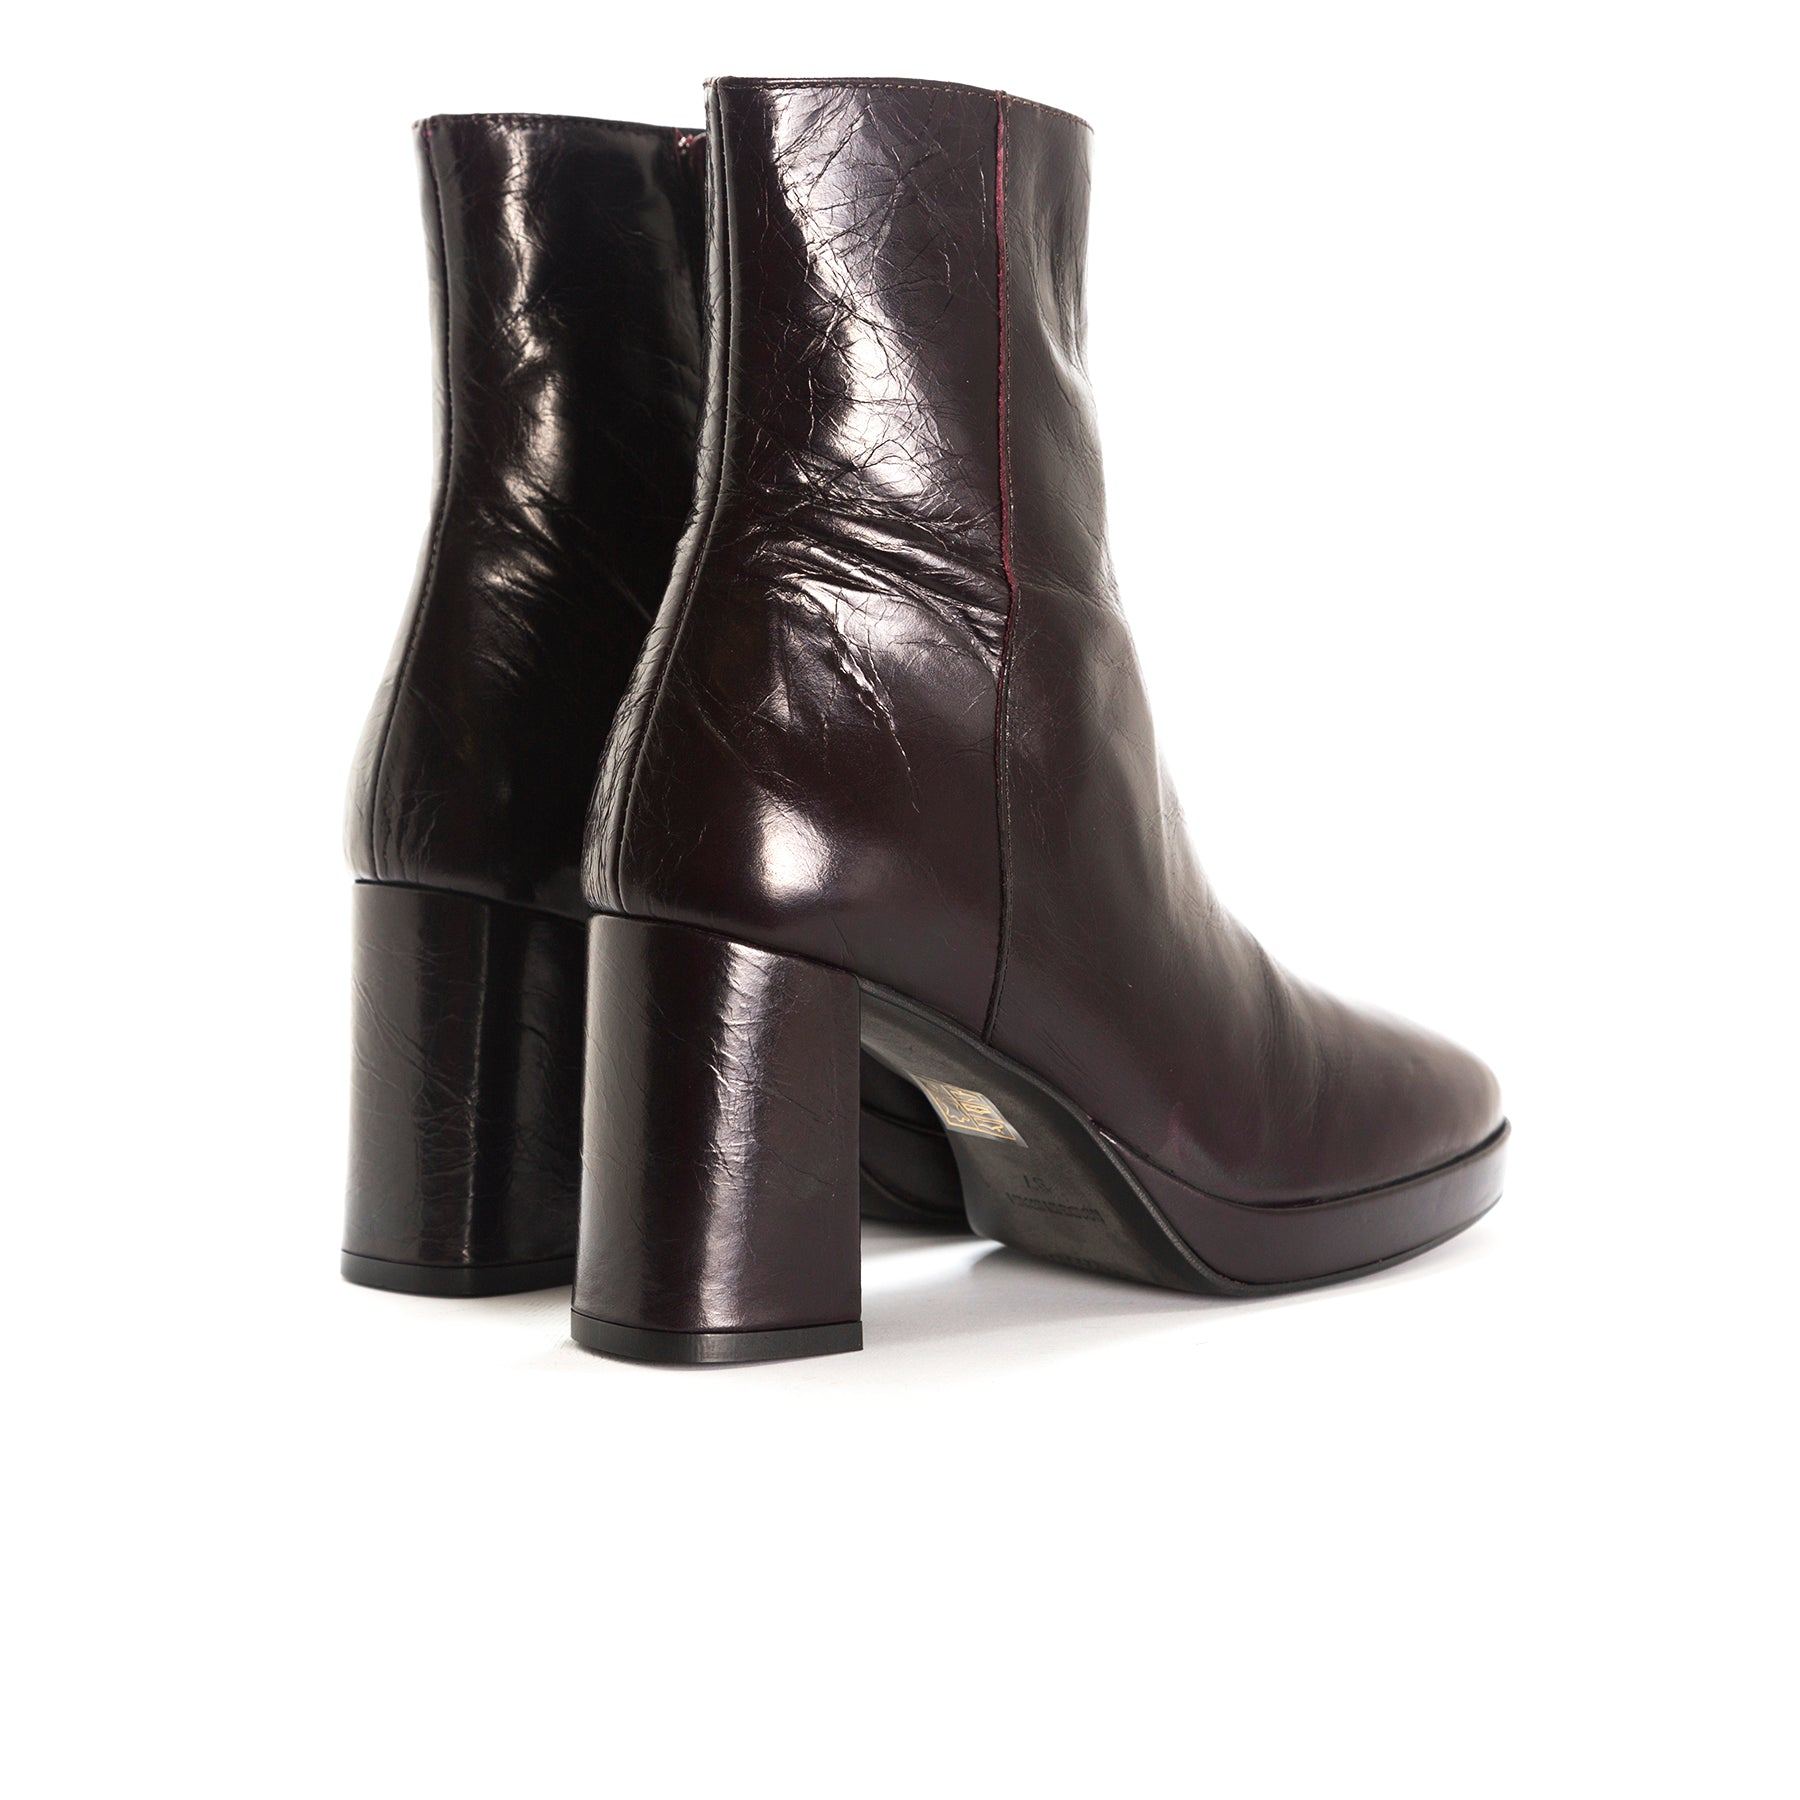 Henessey Bordo Leather Booties